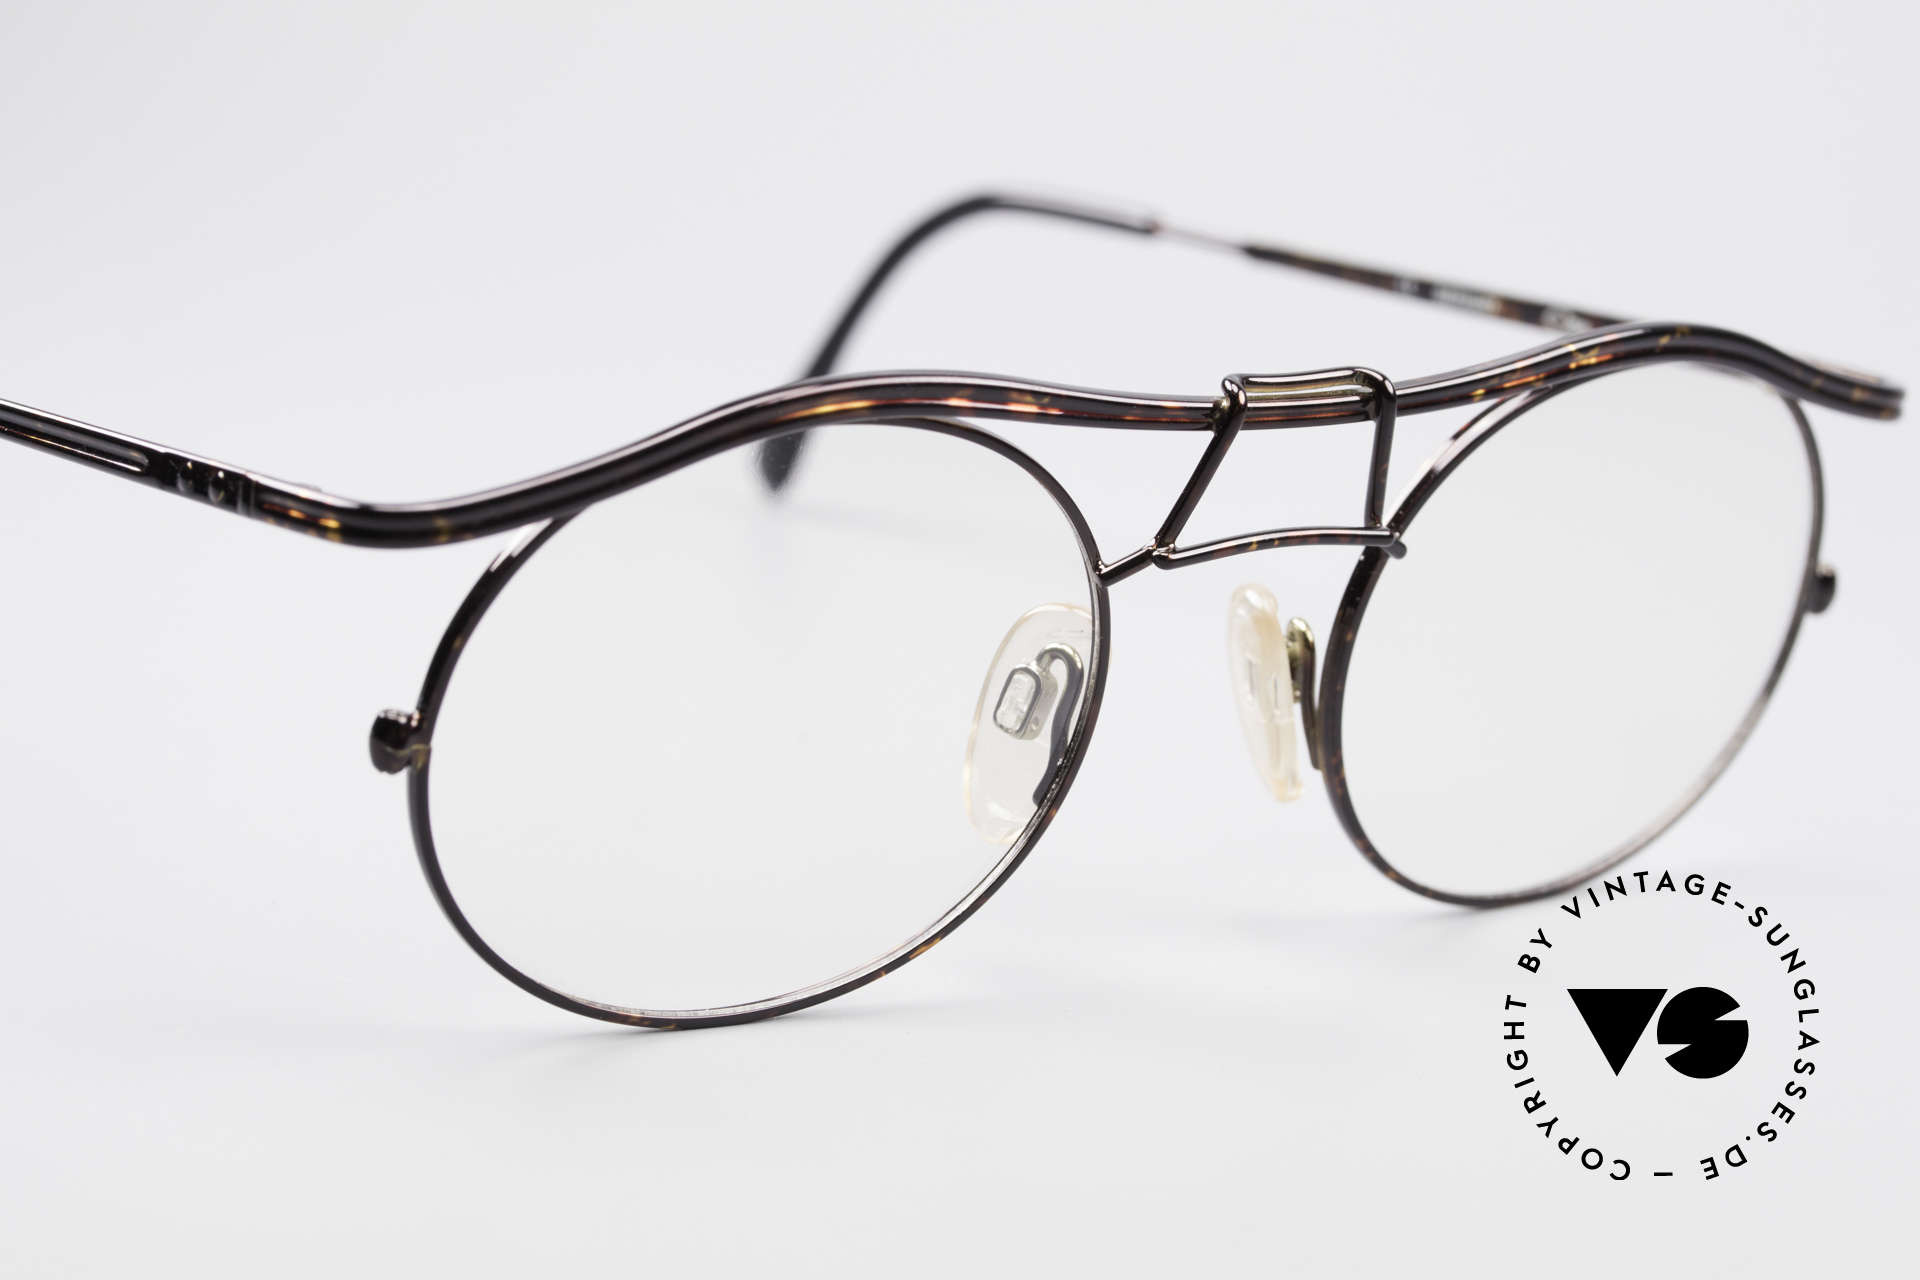 Cazal 1110 - Point 2 90's Industrial Eyeglasses, NO RETRO FASHION; but an old ORIGINAL from 1999, Made for Men